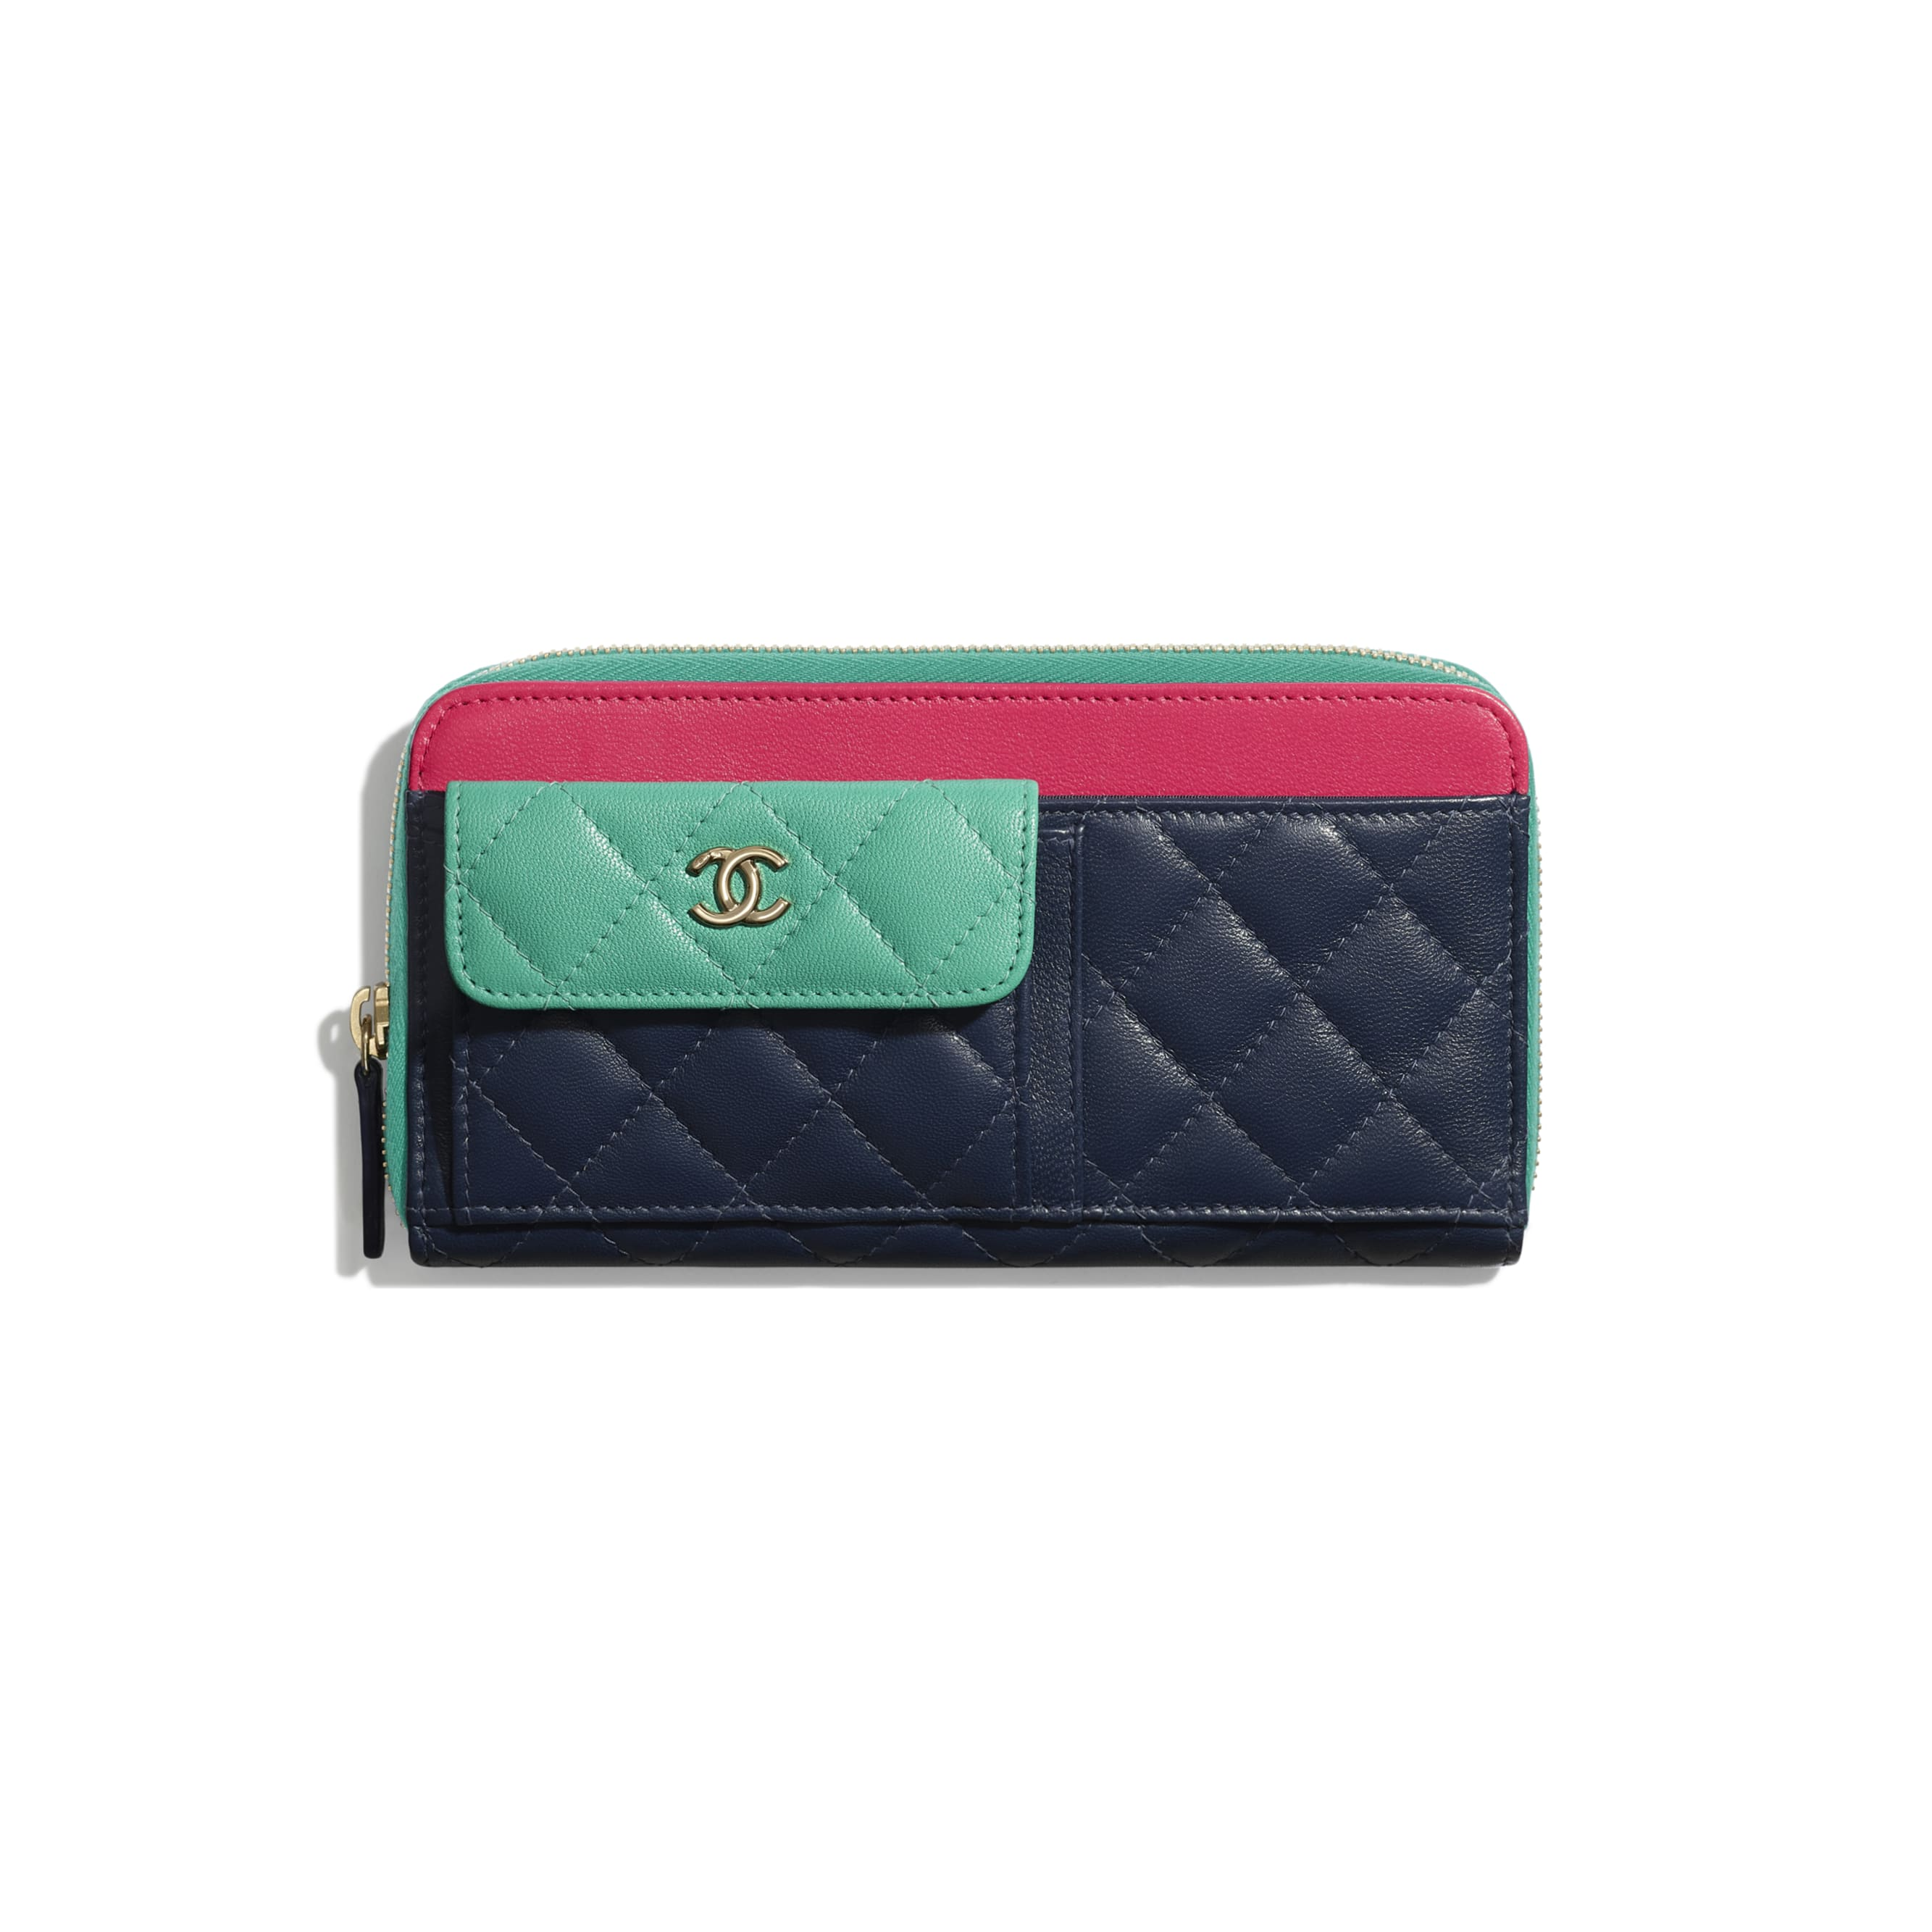 Long Zipped Wallet - Navy Blue, Green & Dark Pink - Goatskin & Gold-Tone Metal - Default view - see standard sized version